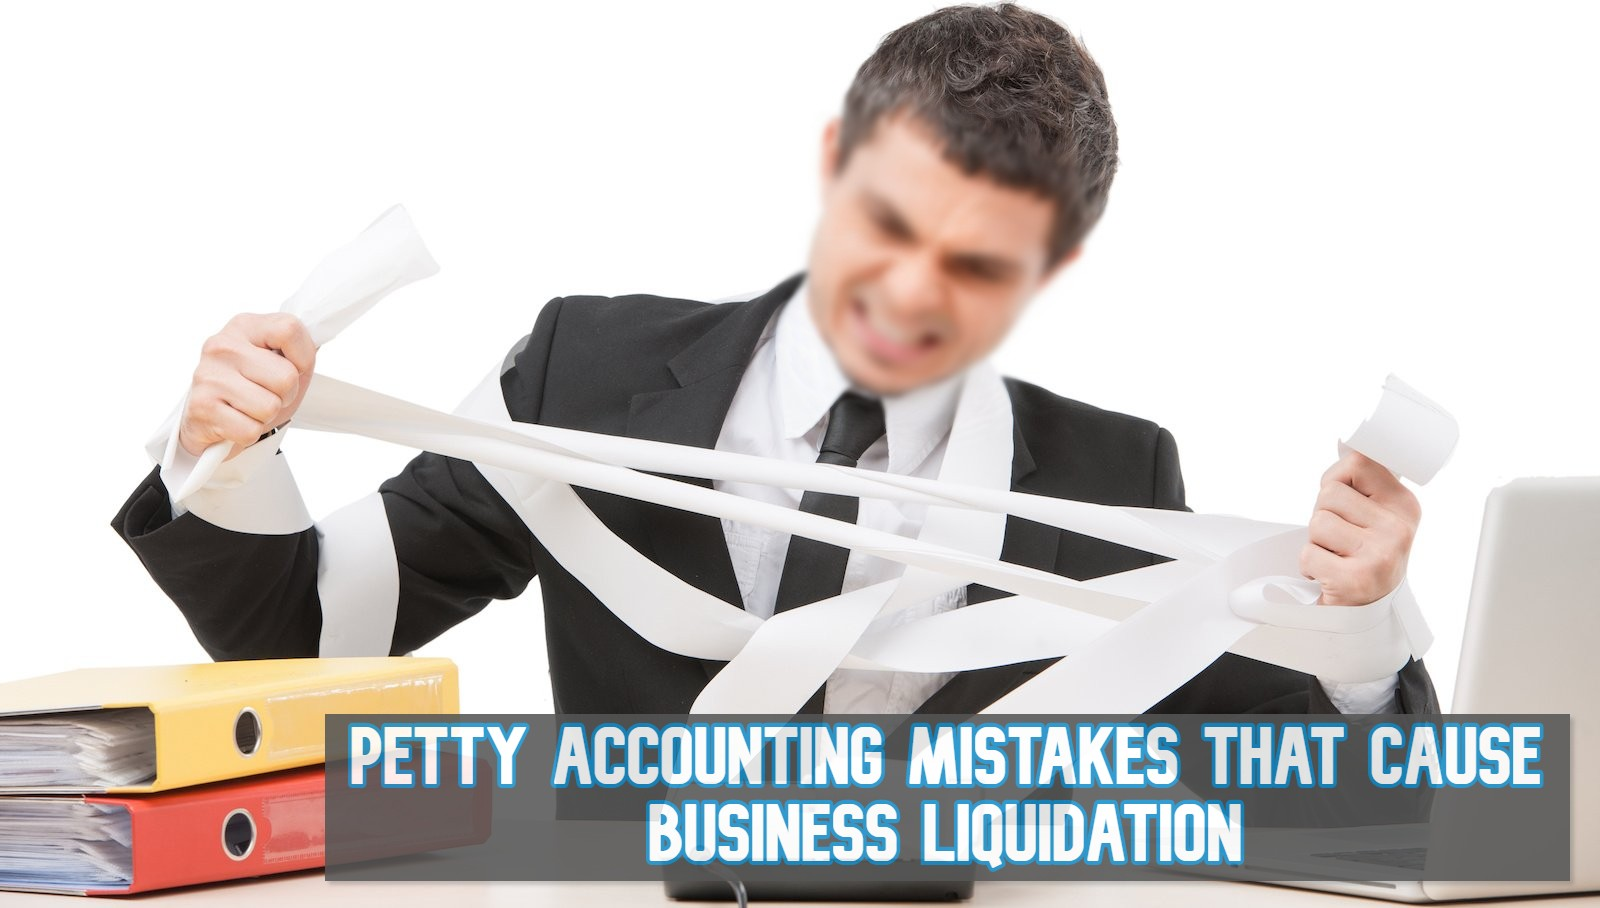 Petty Accounting Mistakes That Cause Business Liquidation